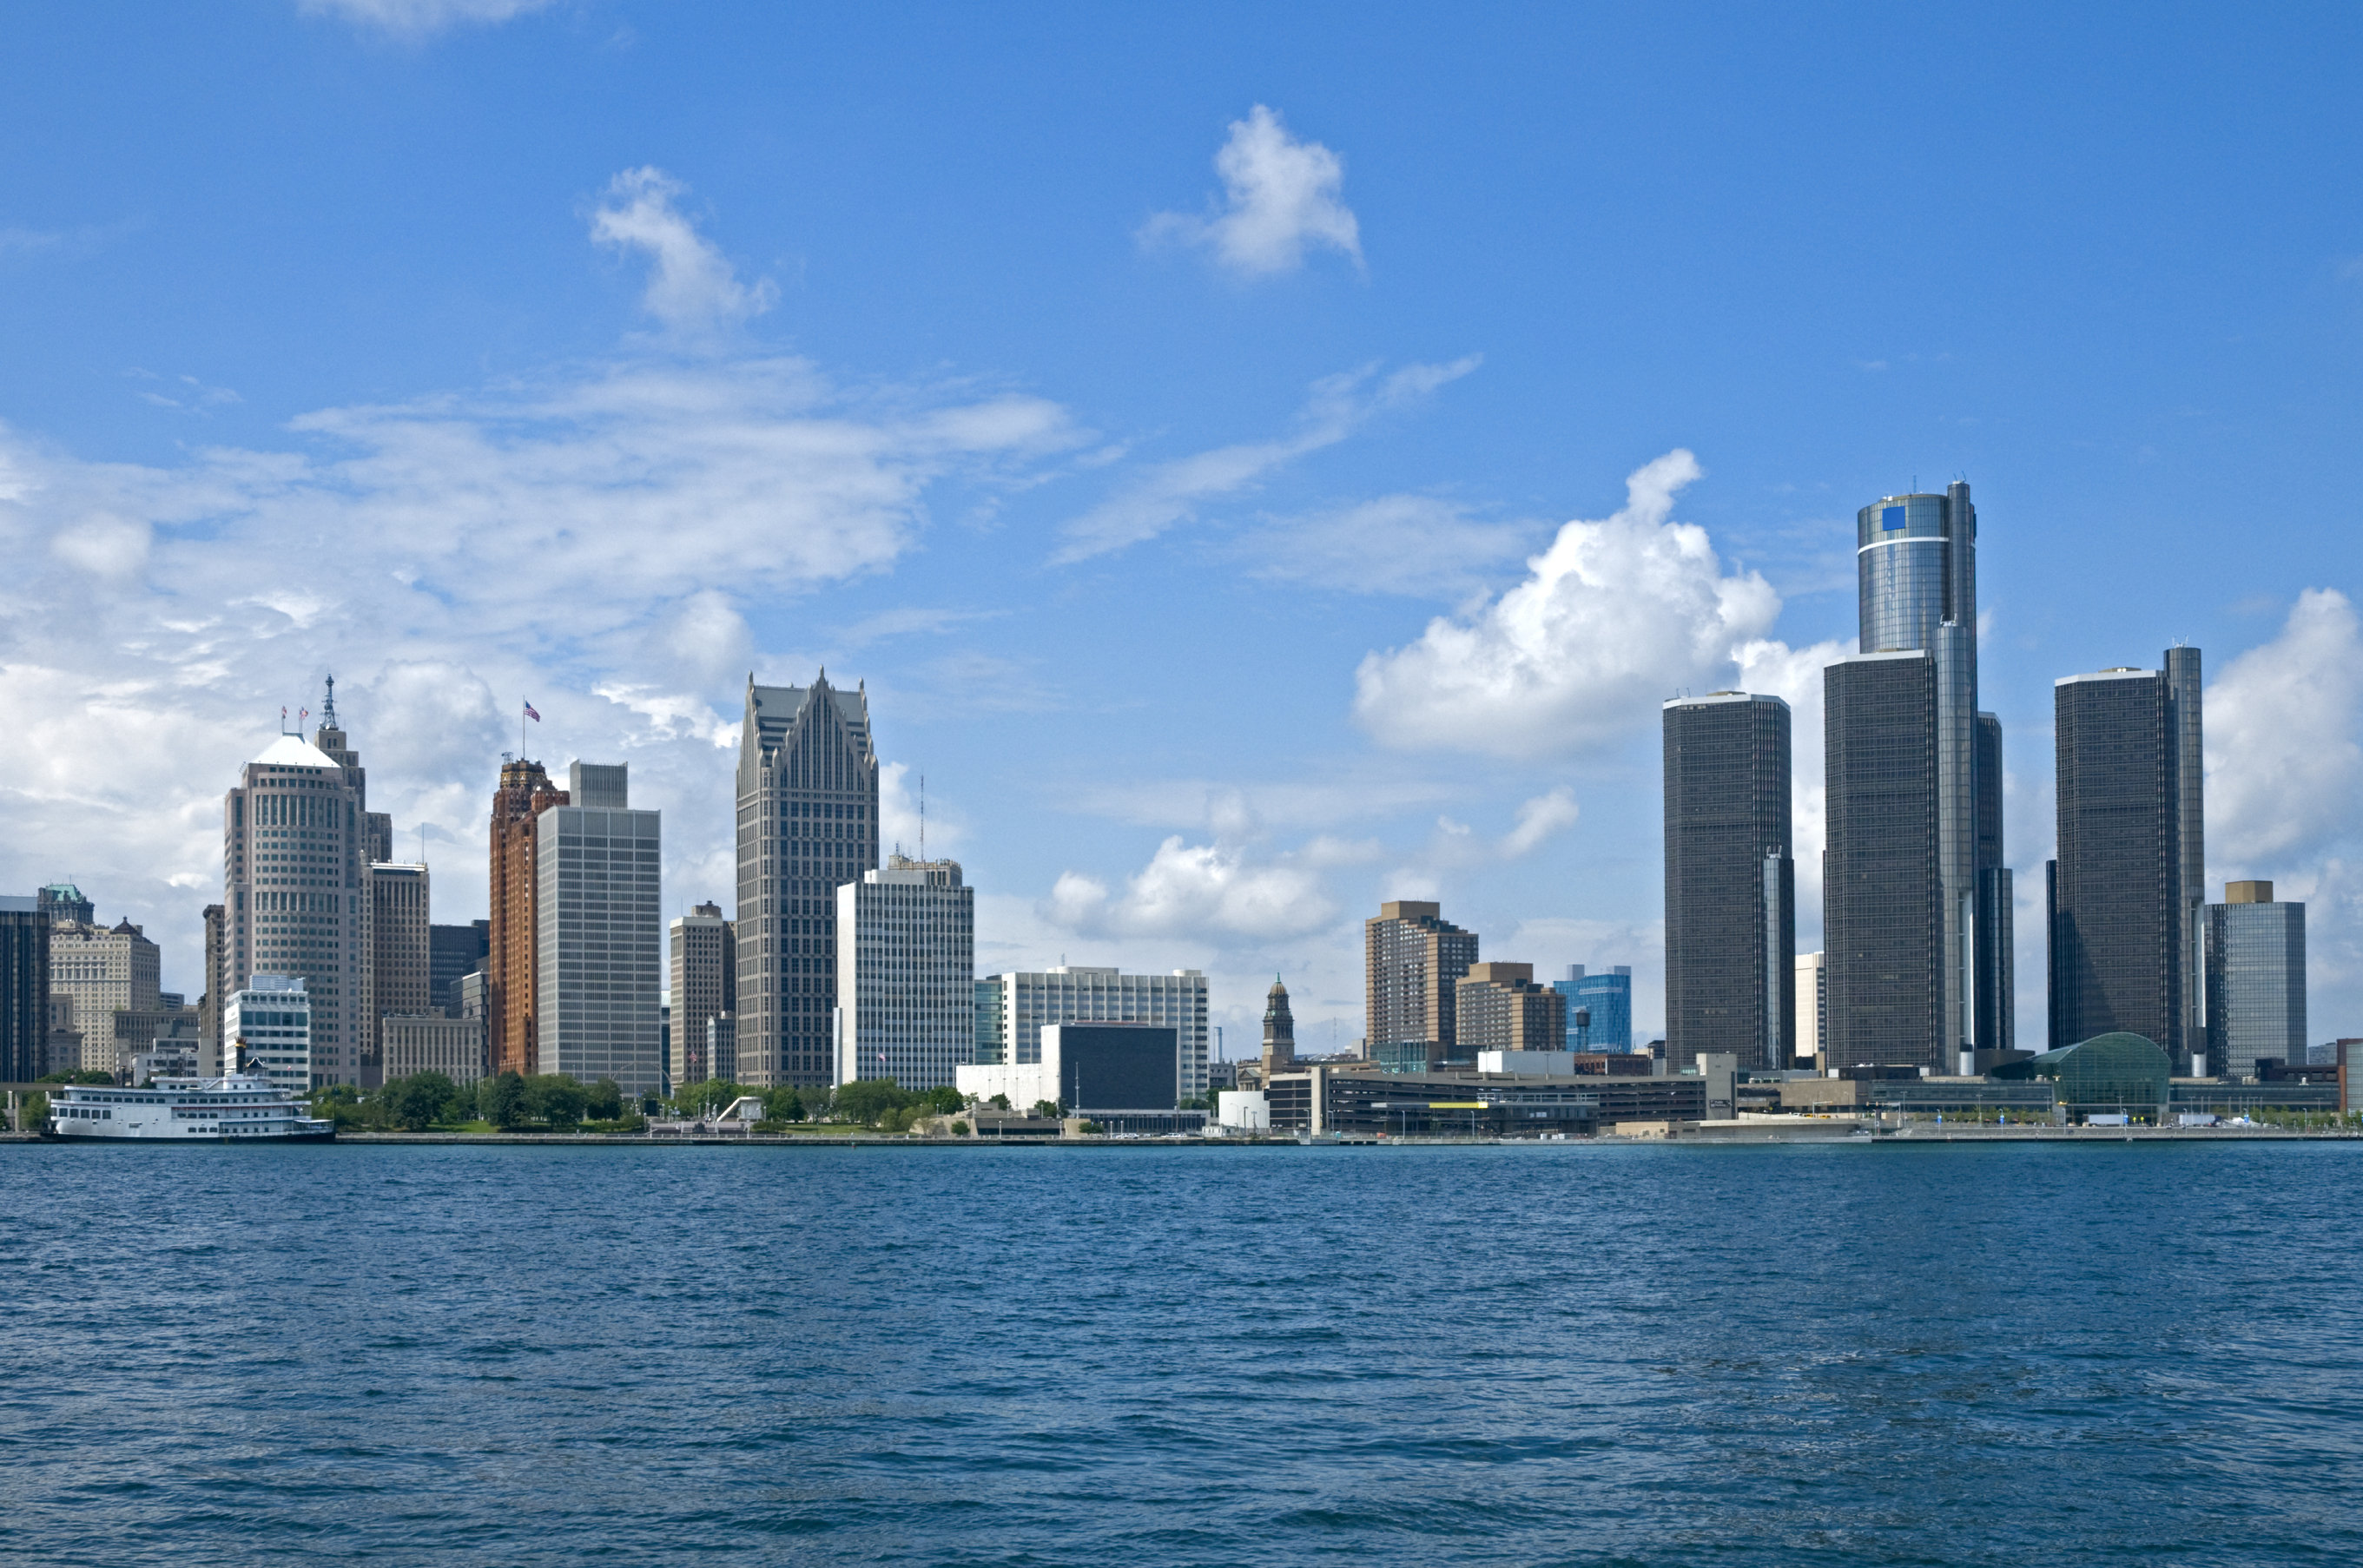 What exactly happened to Detroit?